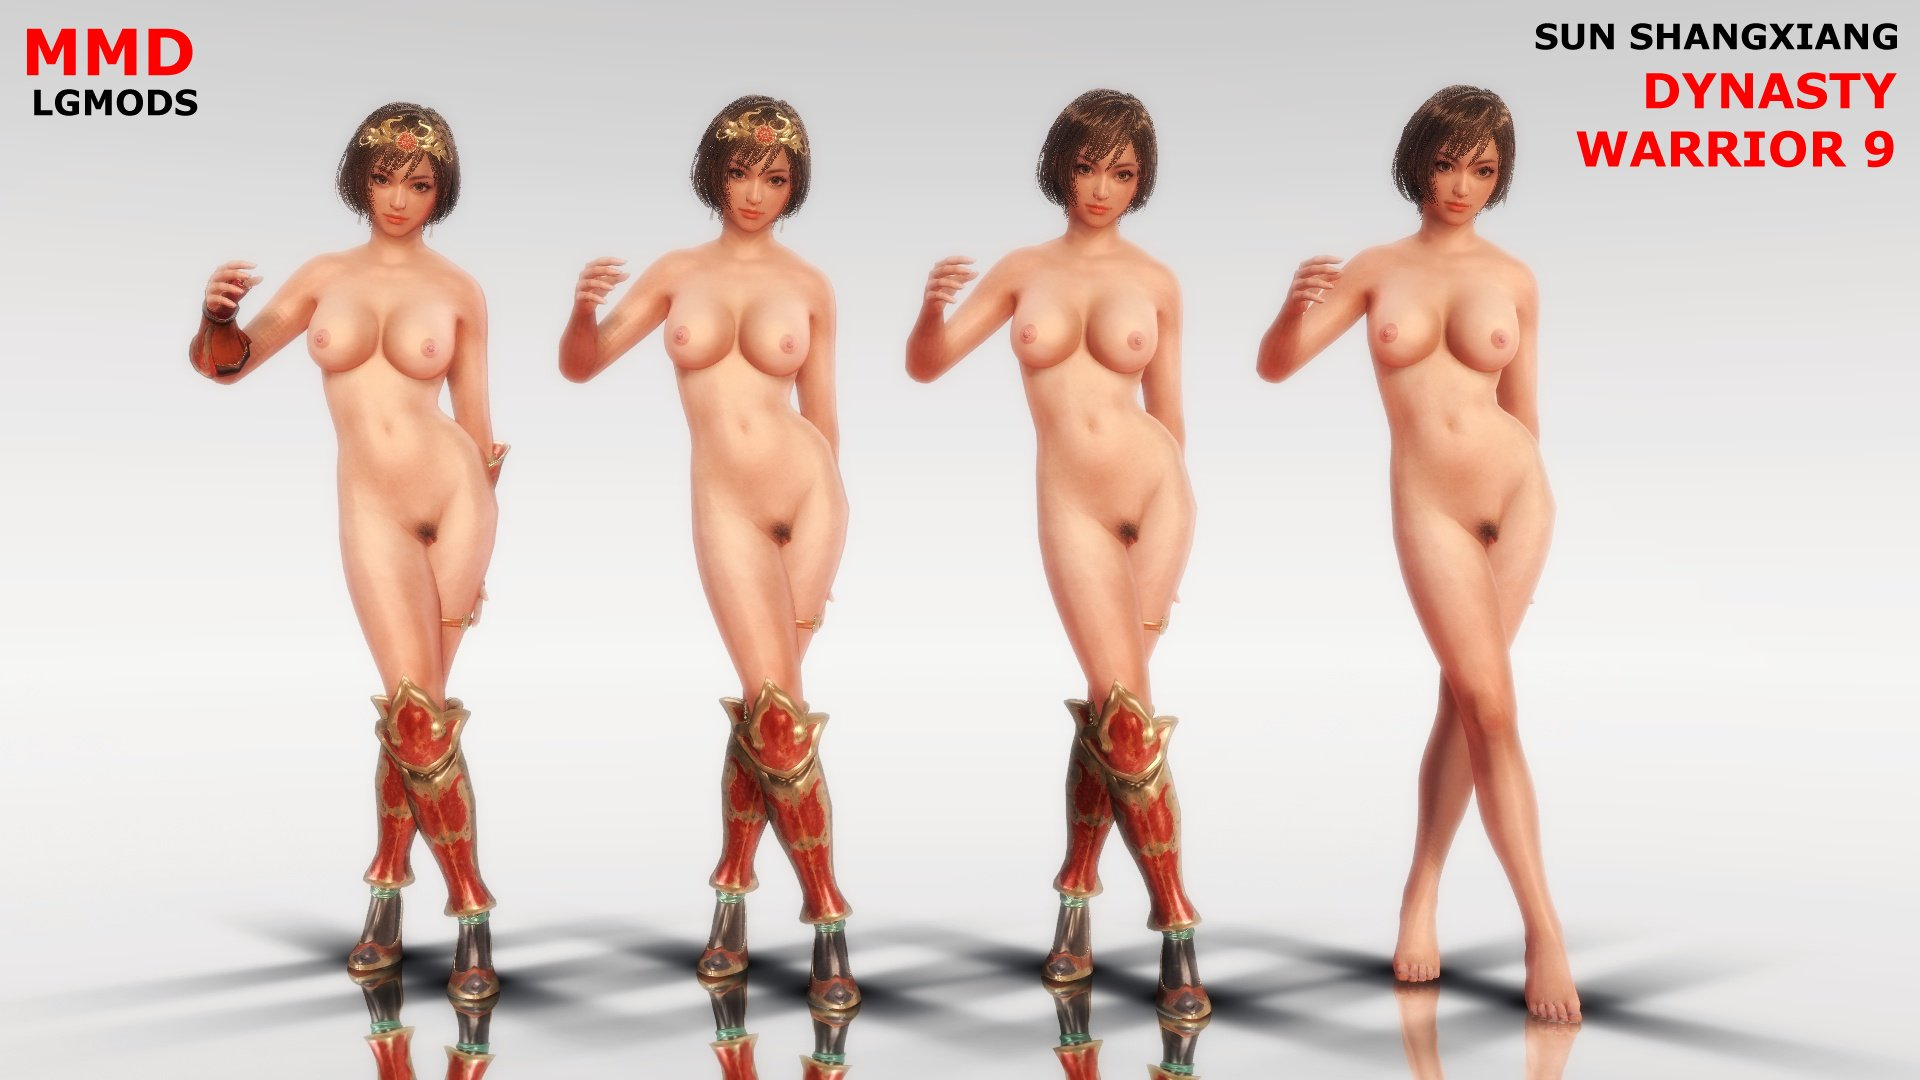 [MMD DL] DW9 : SUN SHANGXIANG NAKED